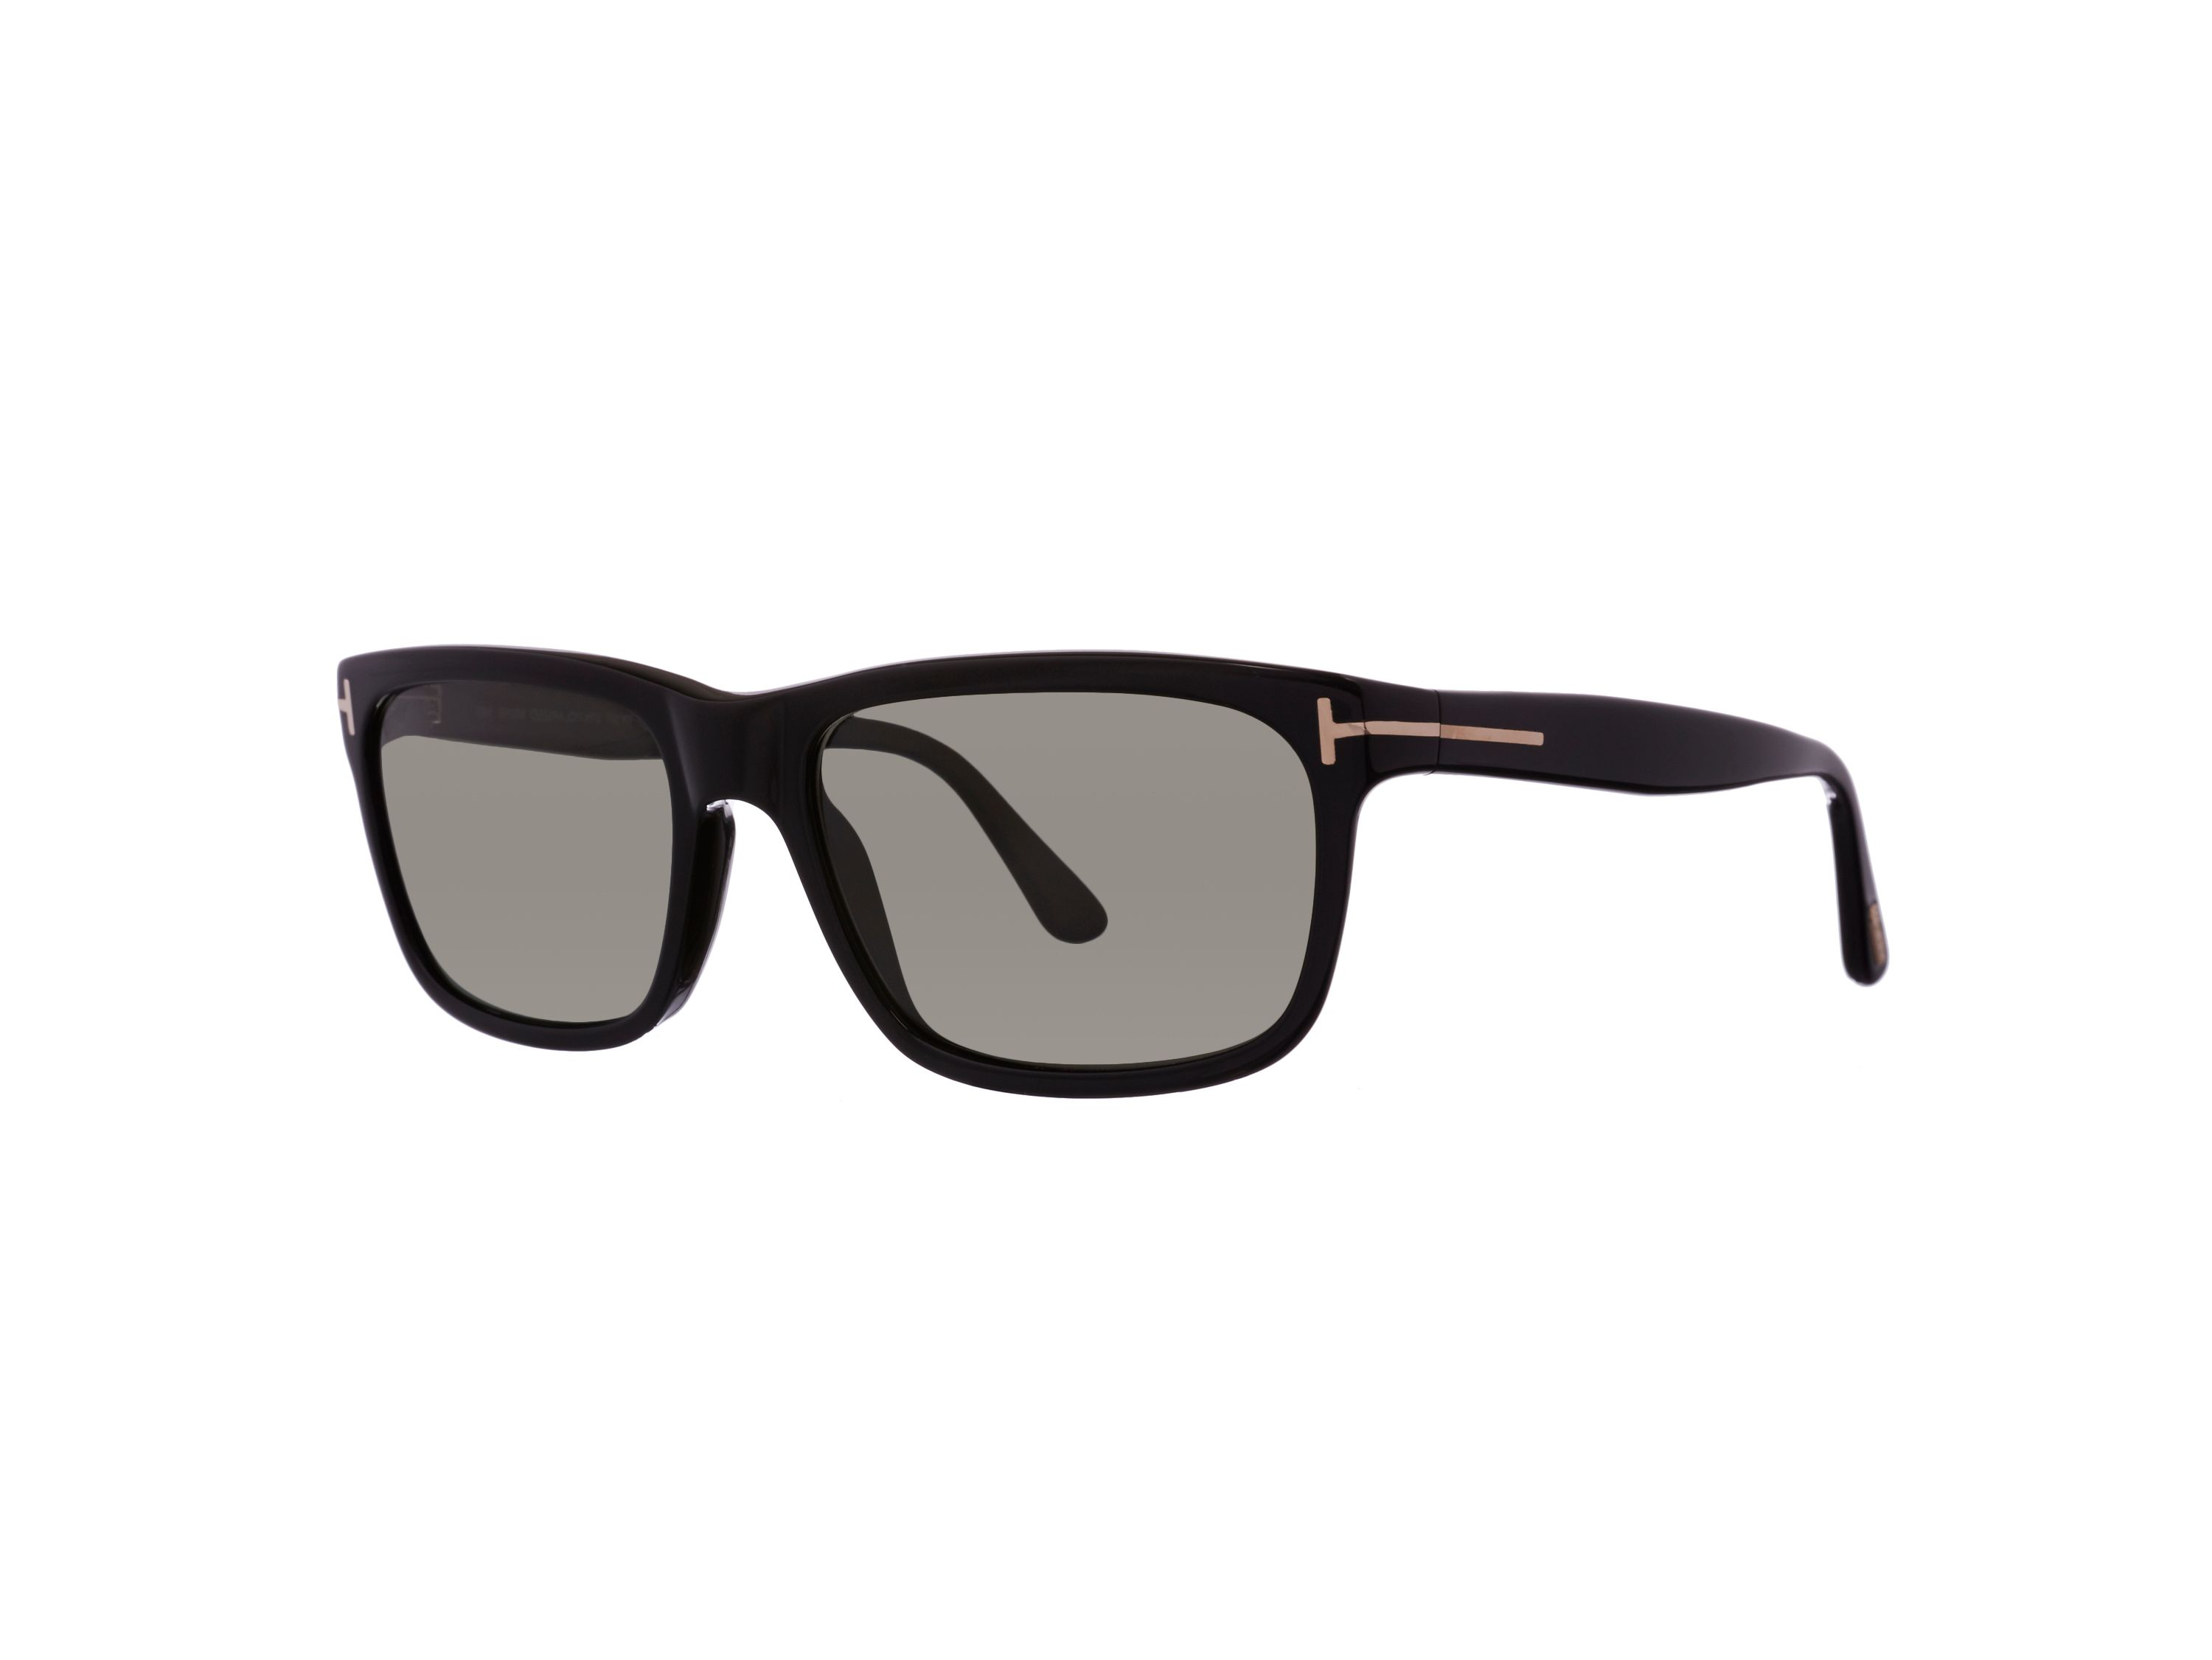 Tom Ford Sunglasses Men`s green polar irregular sunglasses